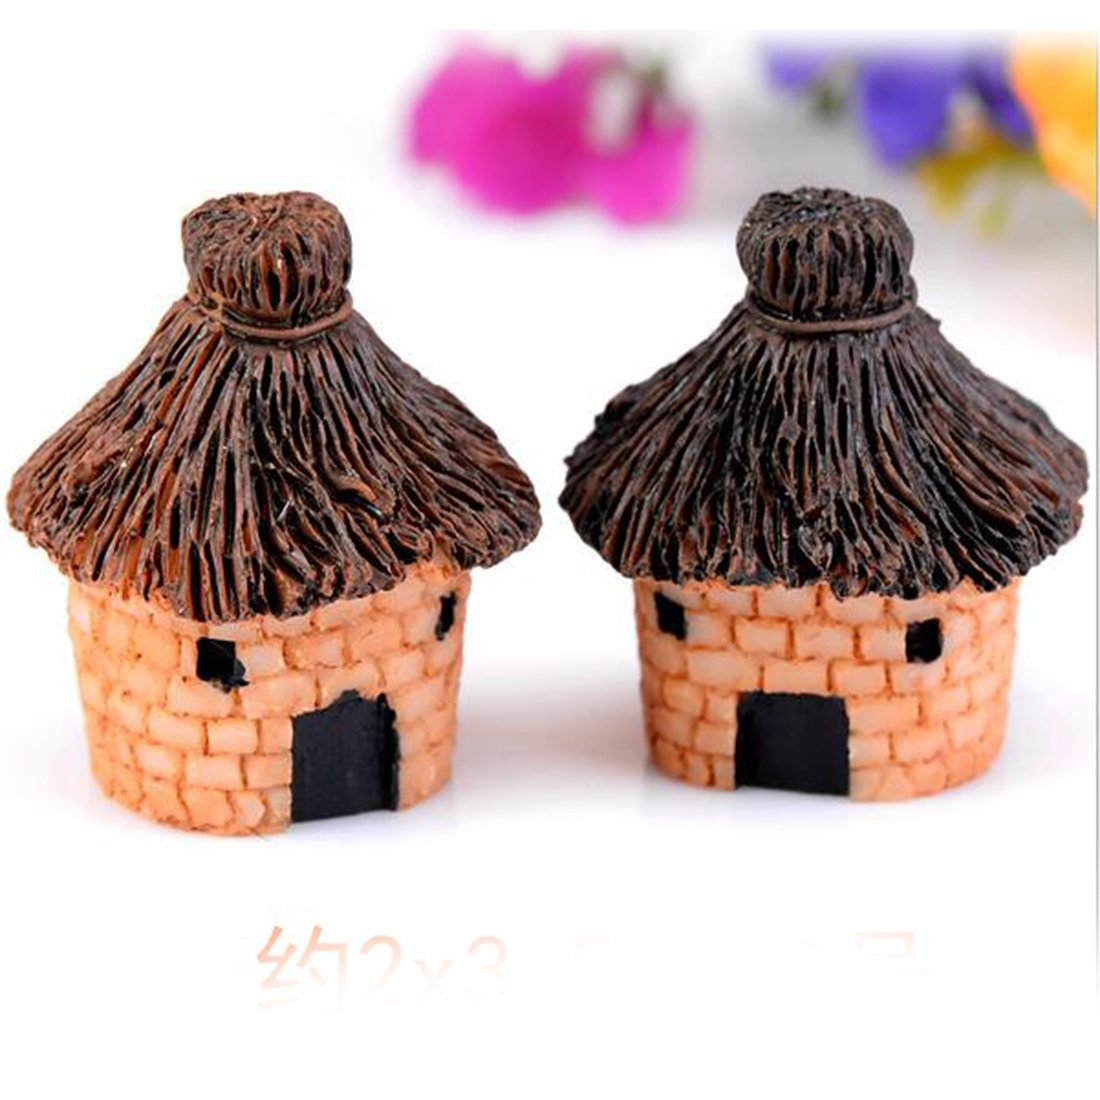 Cute Cottages Farmhouse Style Straw House Micro Landscape Ornaments Random Color-1.5x2x2.5cm rongwen LEPAZIK3432